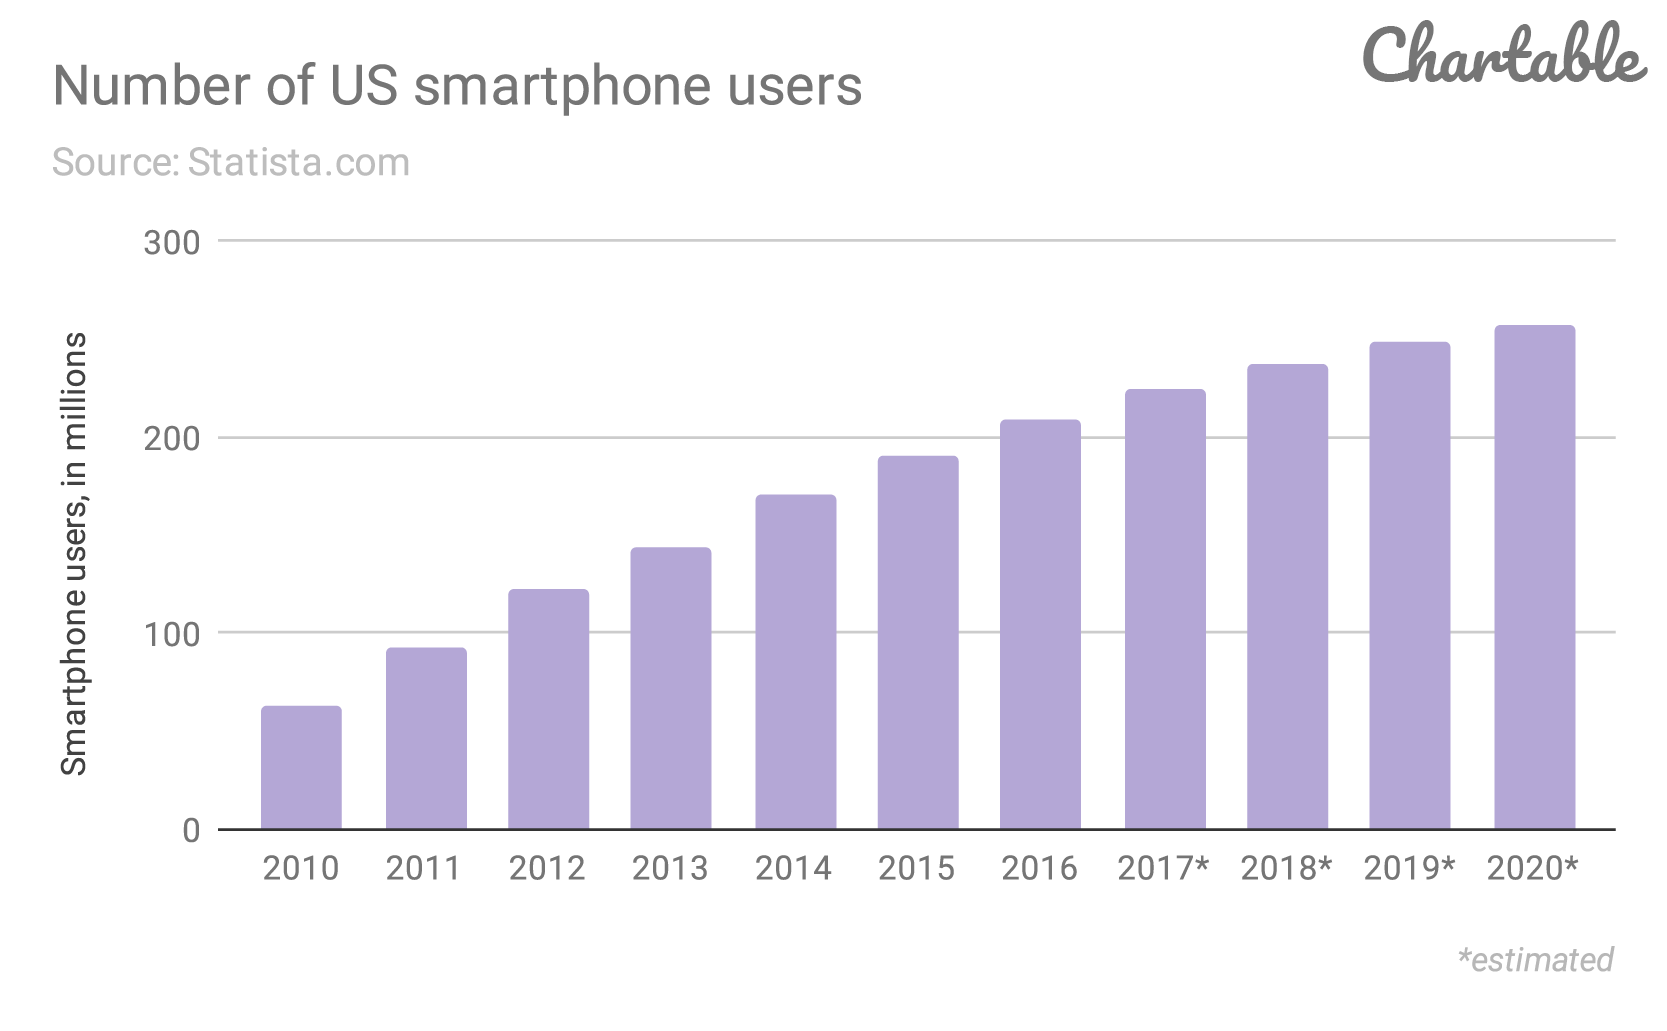 Number-of-US-smartphone-users.png